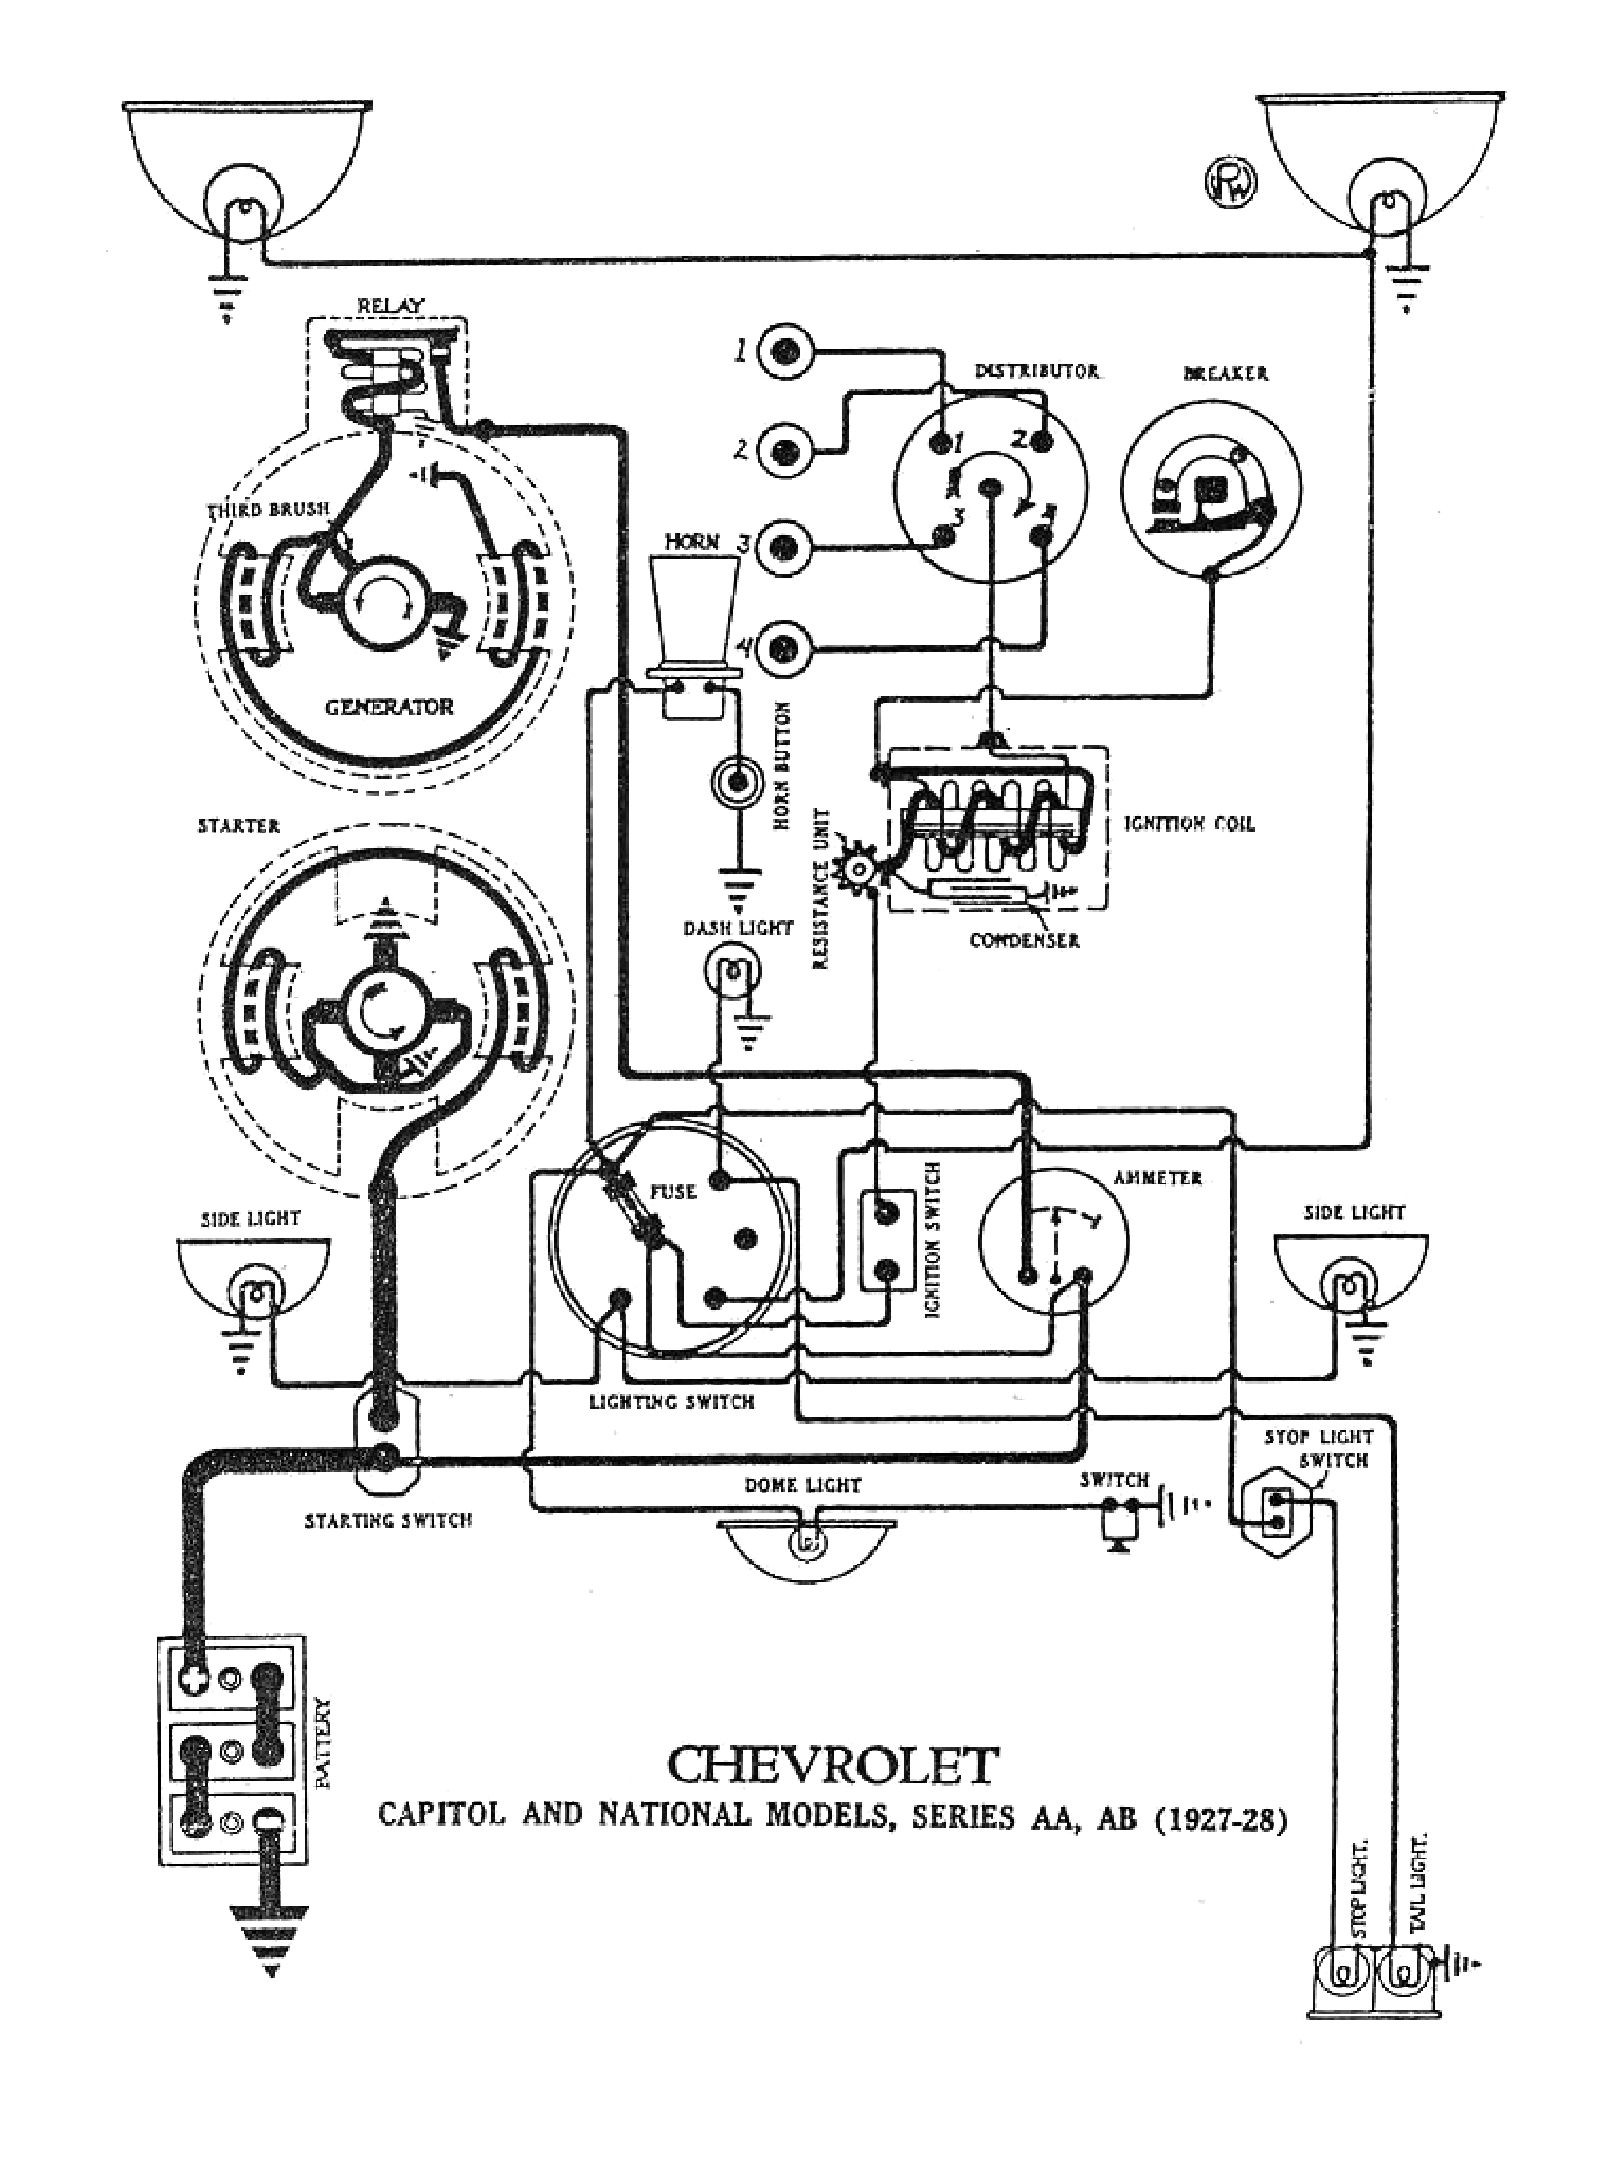 hight resolution of 216 chevy engine diagram wiring diagrams my wiring diagram reliance motor wiring diagram 216 chevy engine